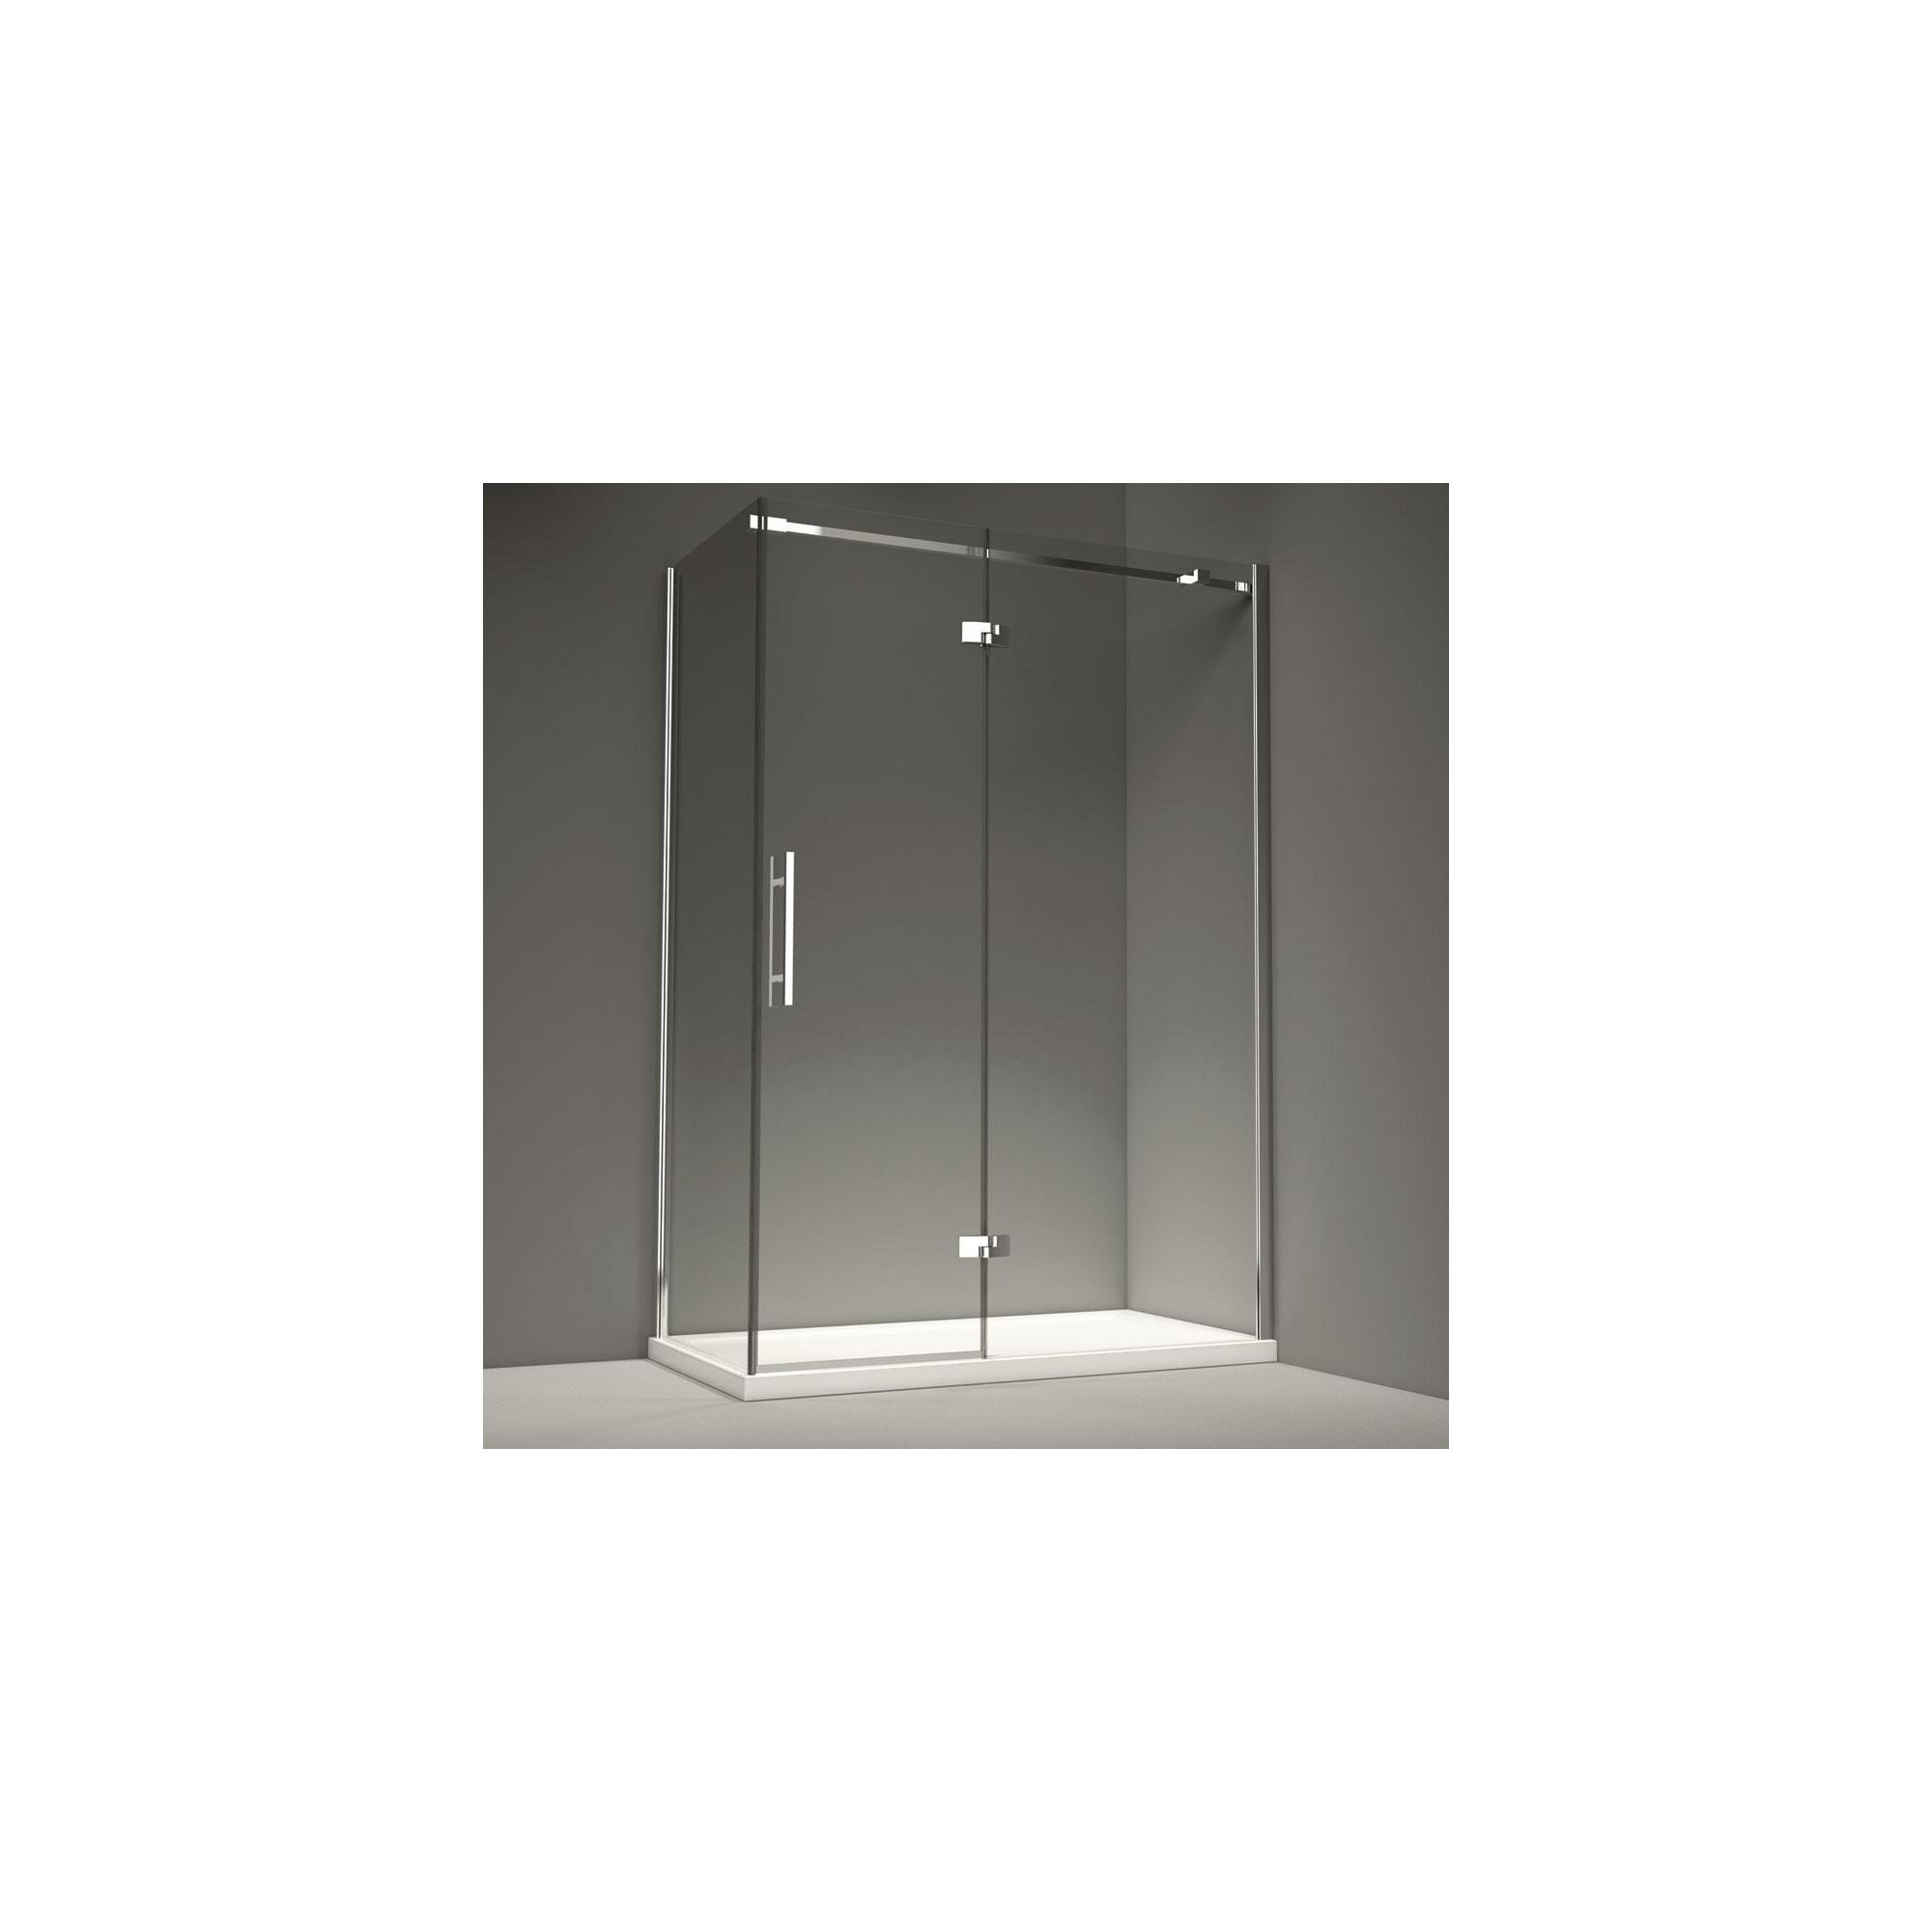 Merlyn Series 9 Inline Hinged Shower Door, 1700mm Wide, 8mm Glass, Right Handed at Tesco Direct